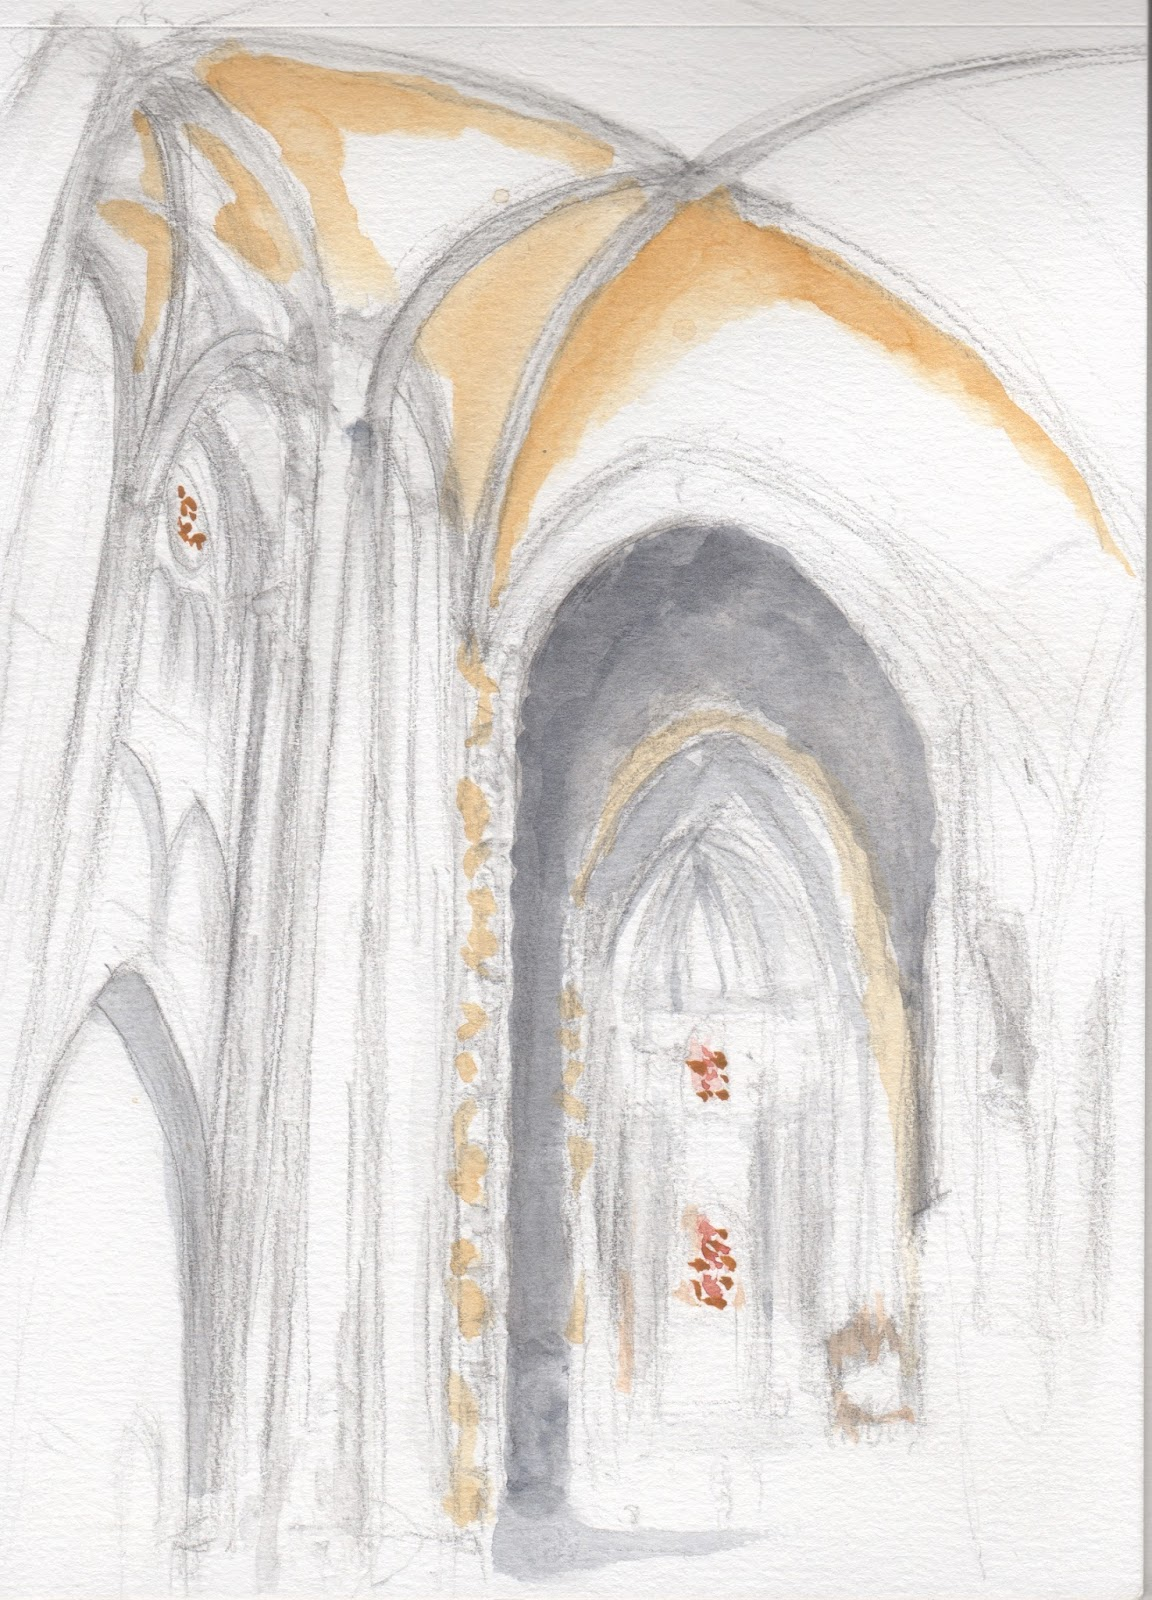 Finally after having a group lunch at a nearby italian restaurant we all went back to sketch some more of this beautiful cathedral